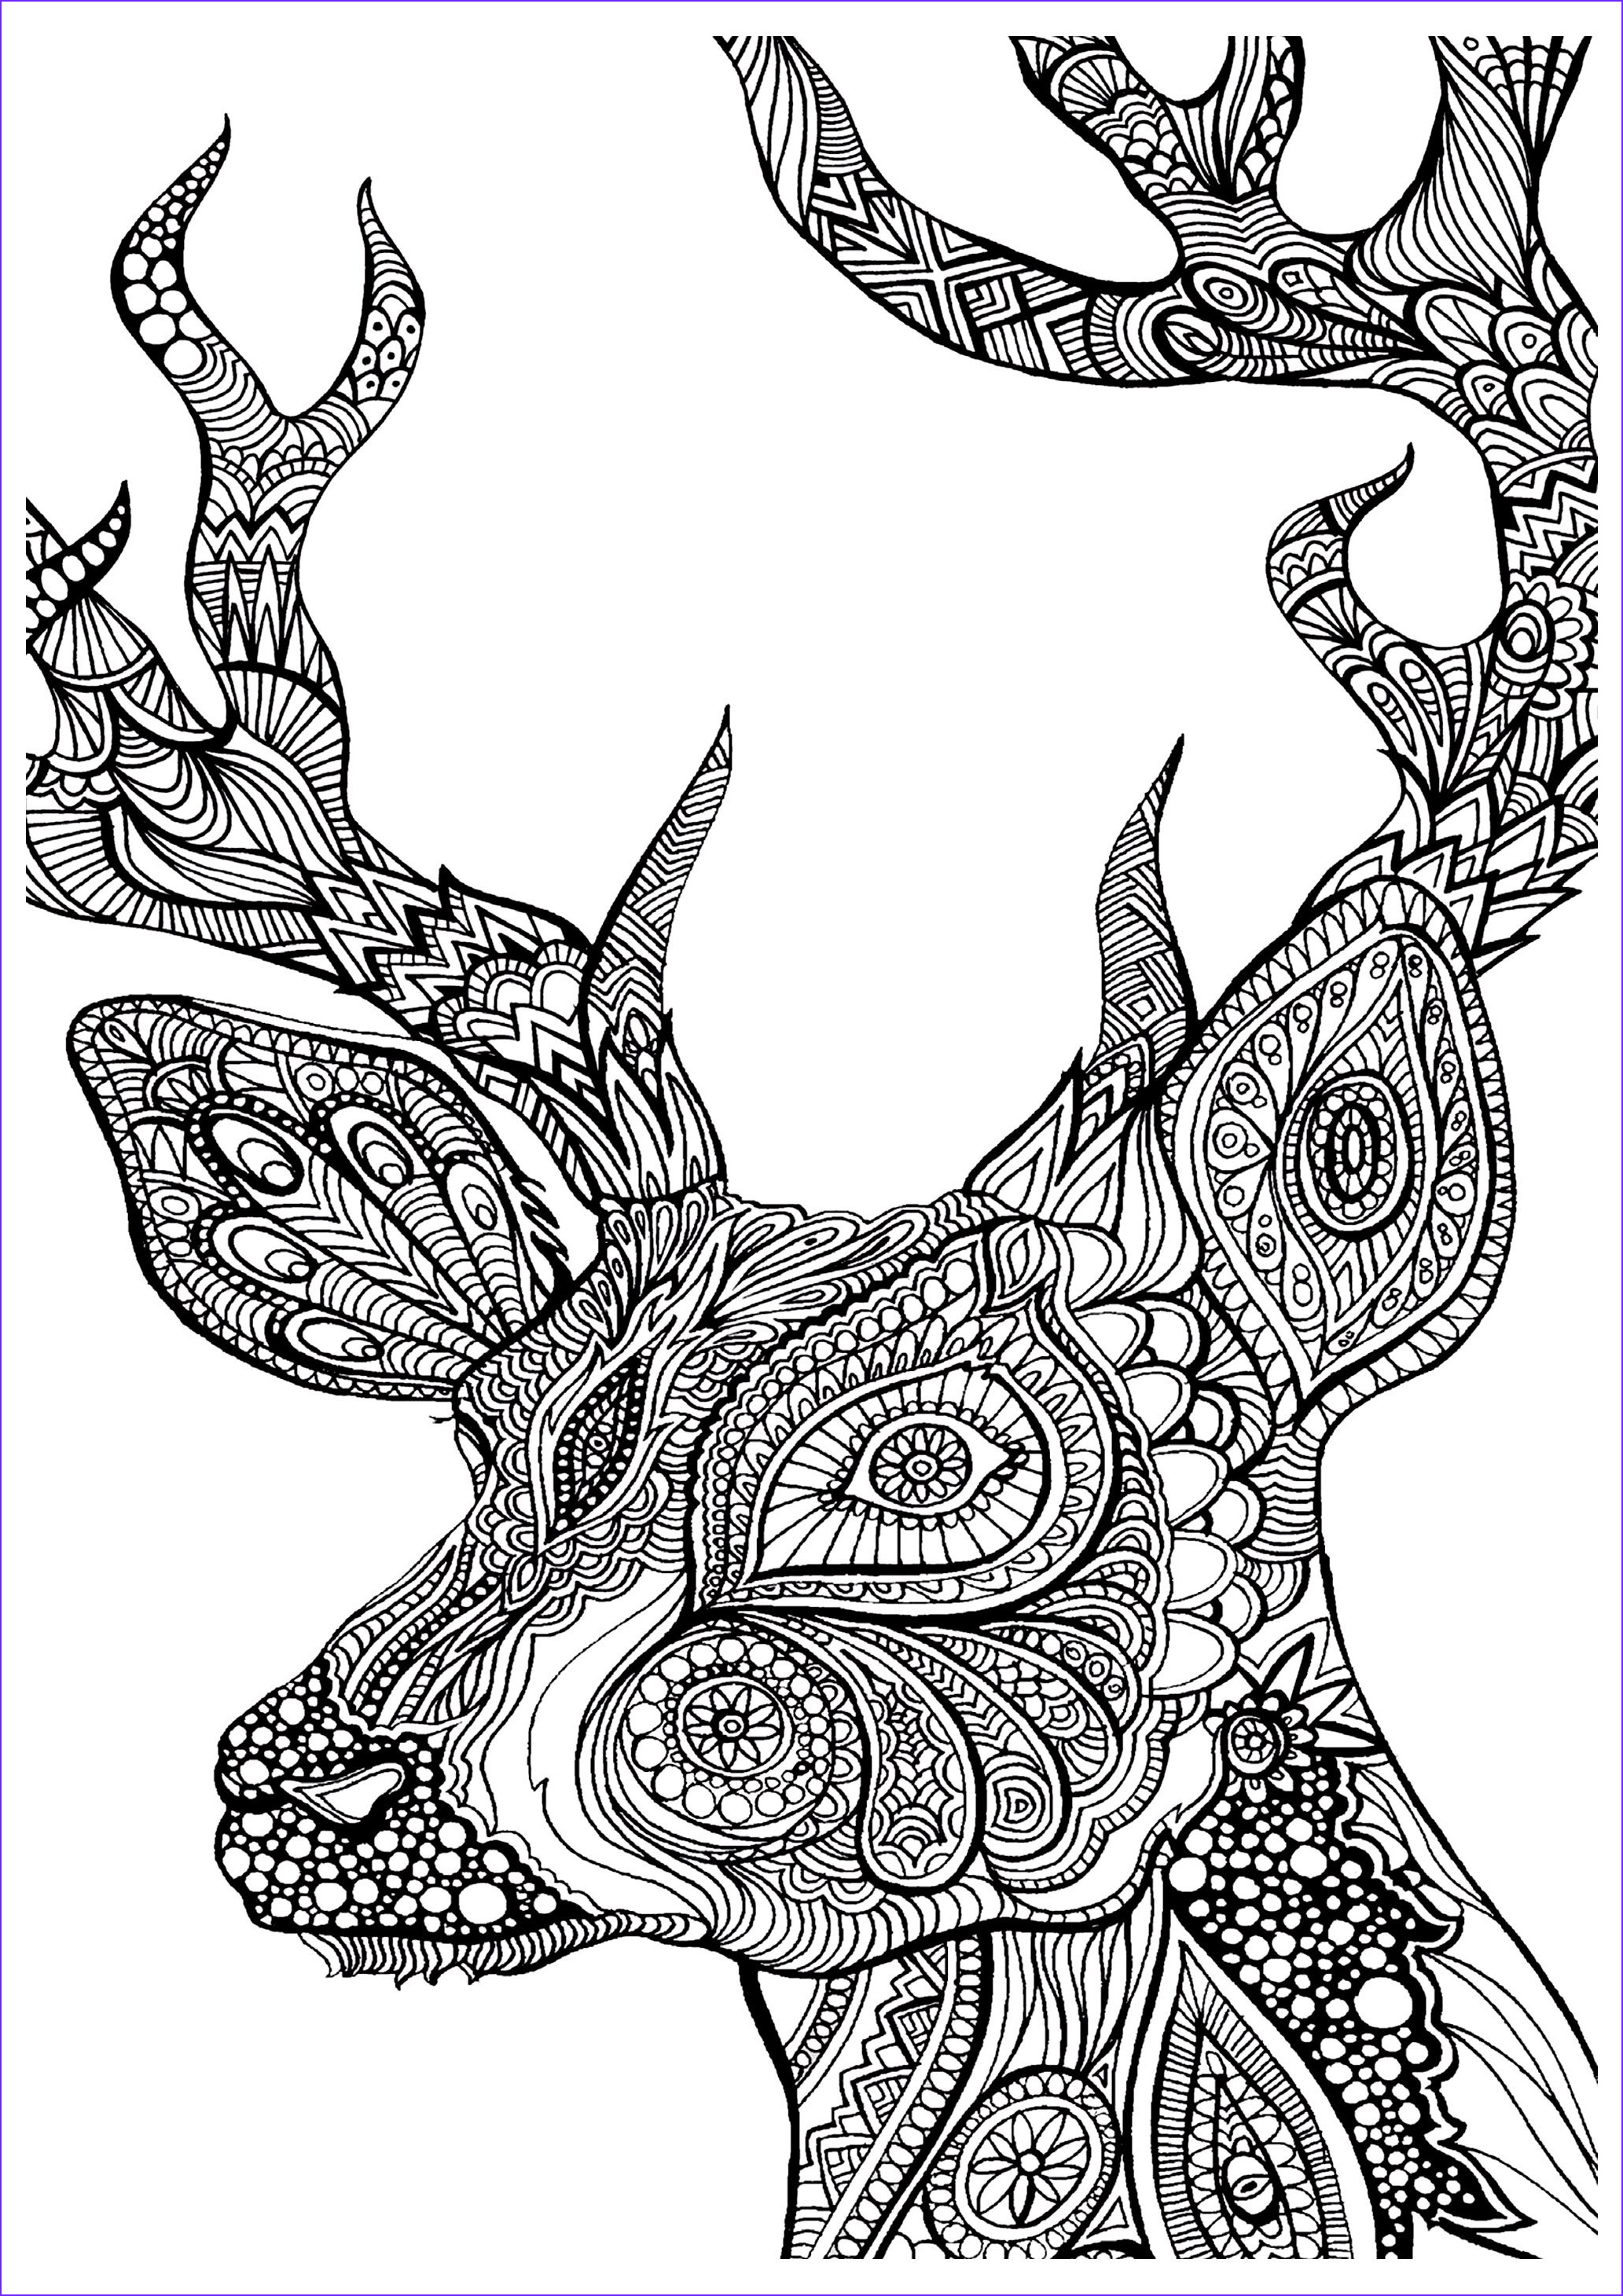 19 of the best adult colouring pages